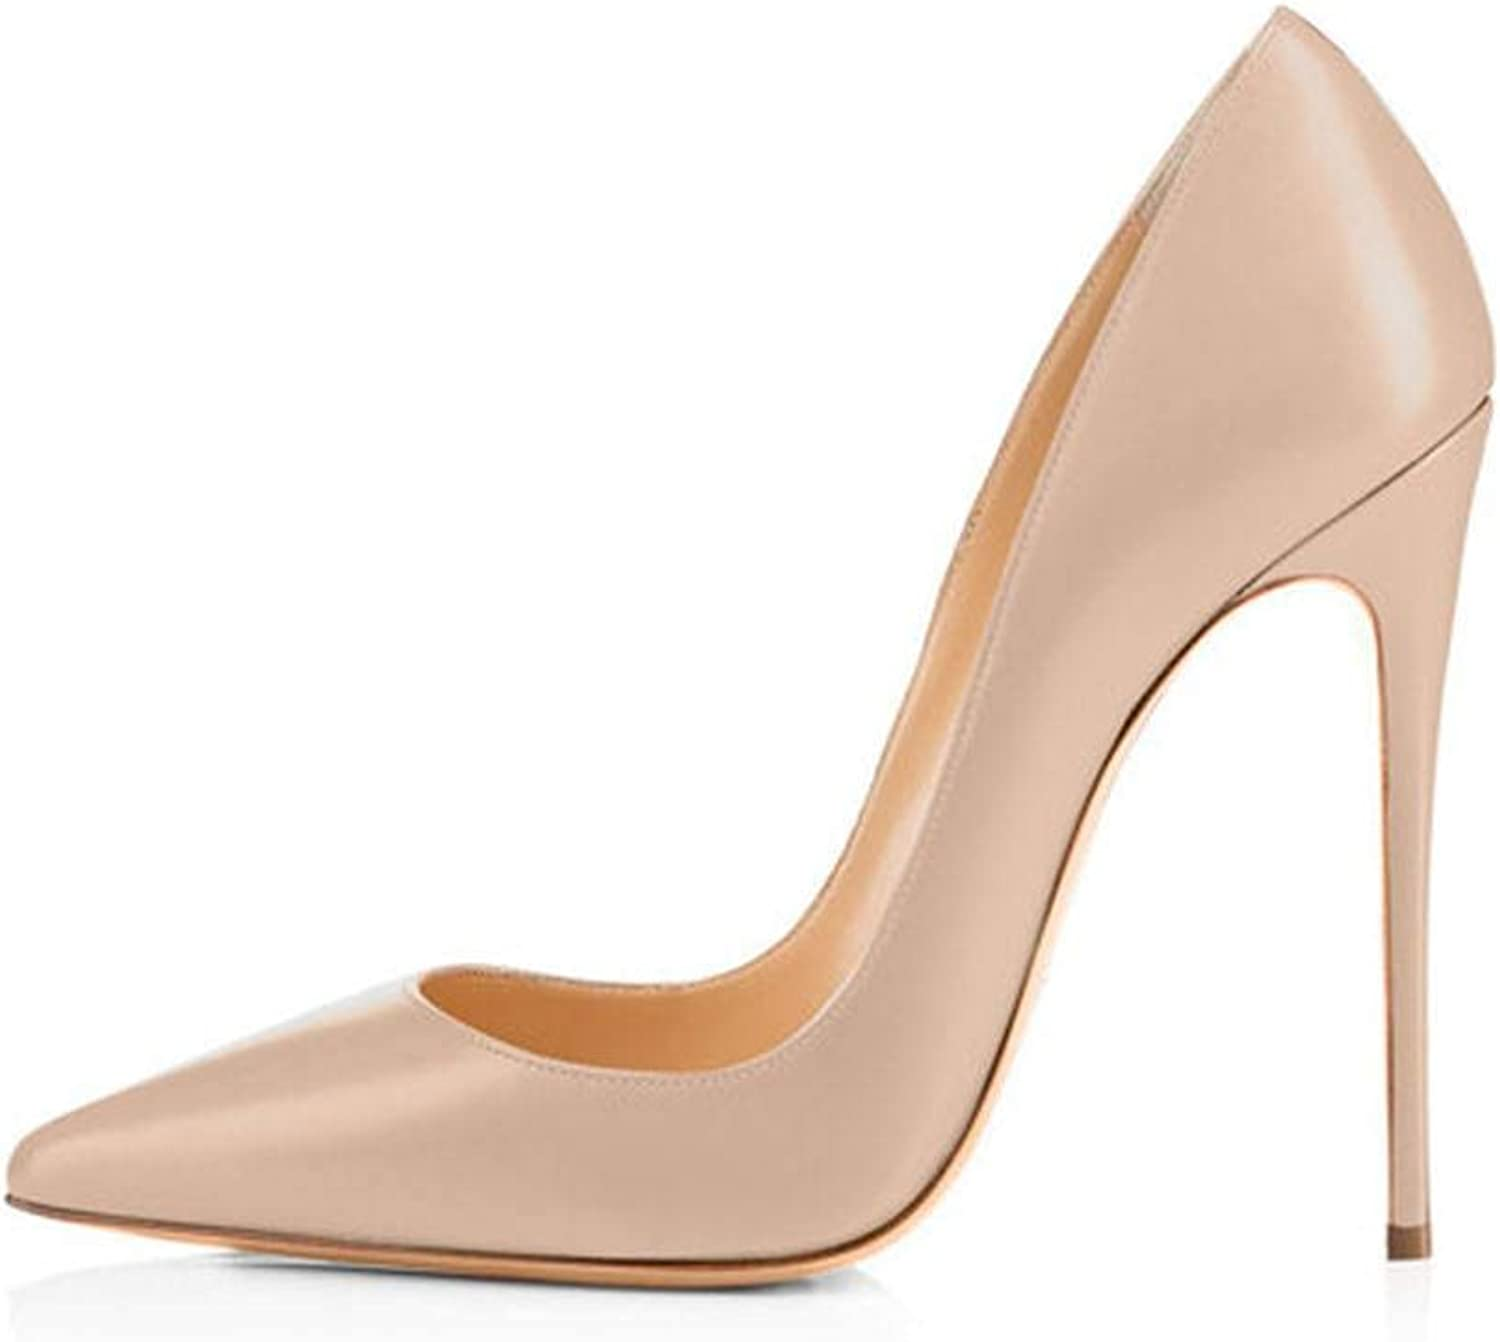 Lin-House Women shoes Thin High Heel Stilettos Pointed Toe Patent Leather shoes,H161203,12